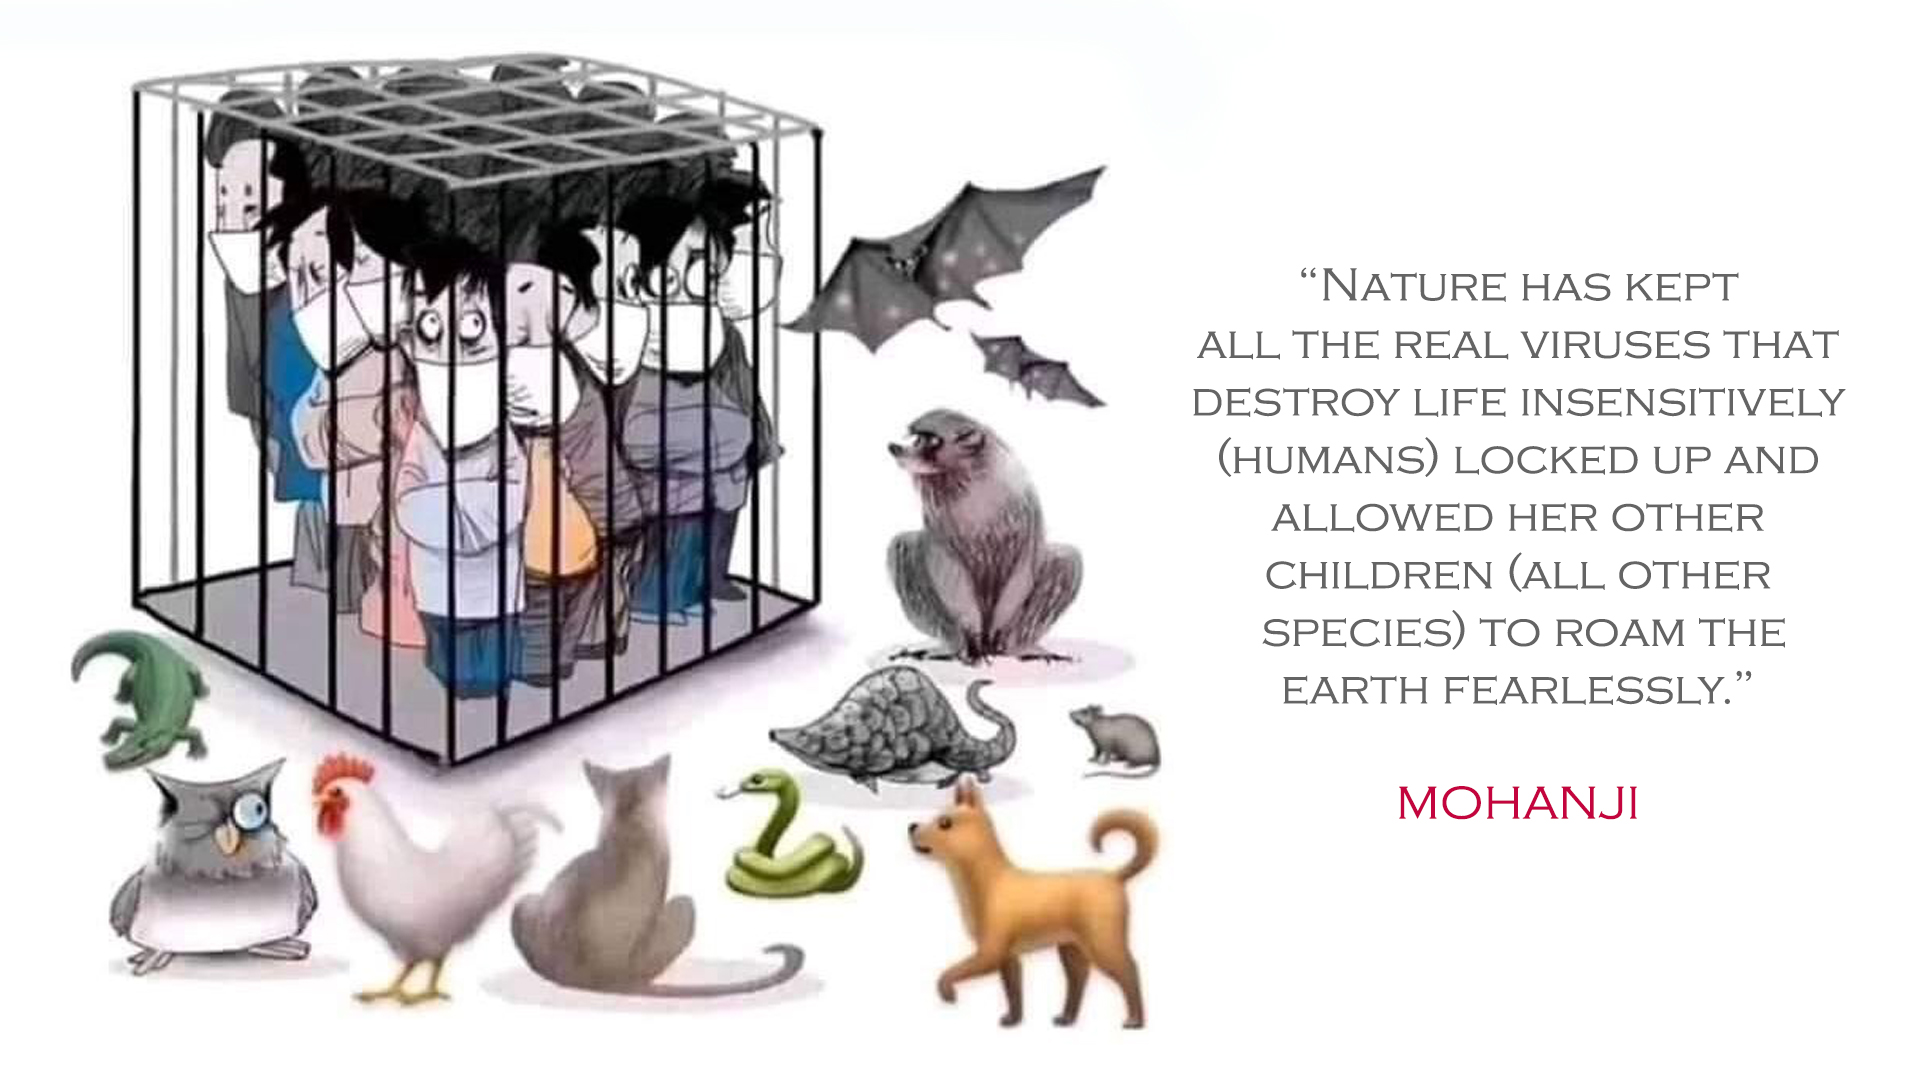 Humans in the cage, animals free - covid19 - Mohanji quote